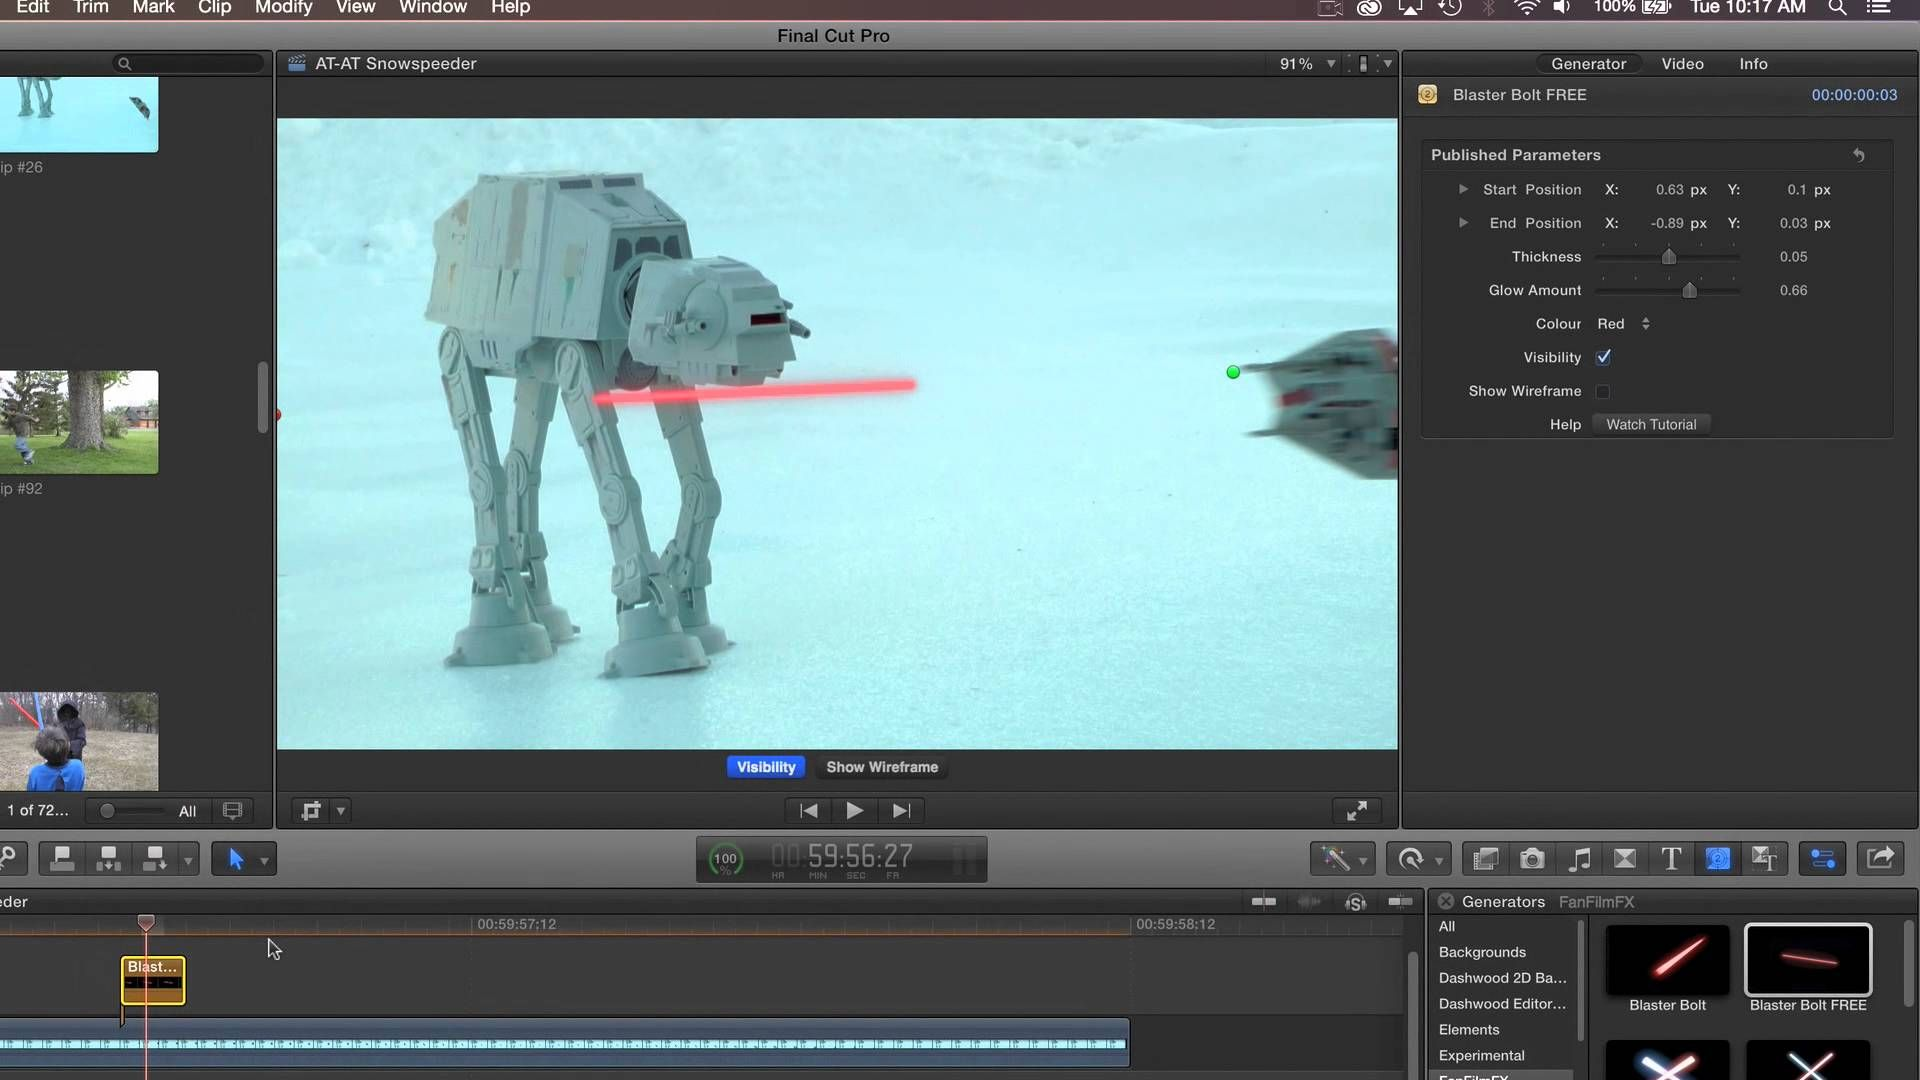 Blaster Bolt for FCP X, Premiere Pro, After Effects and